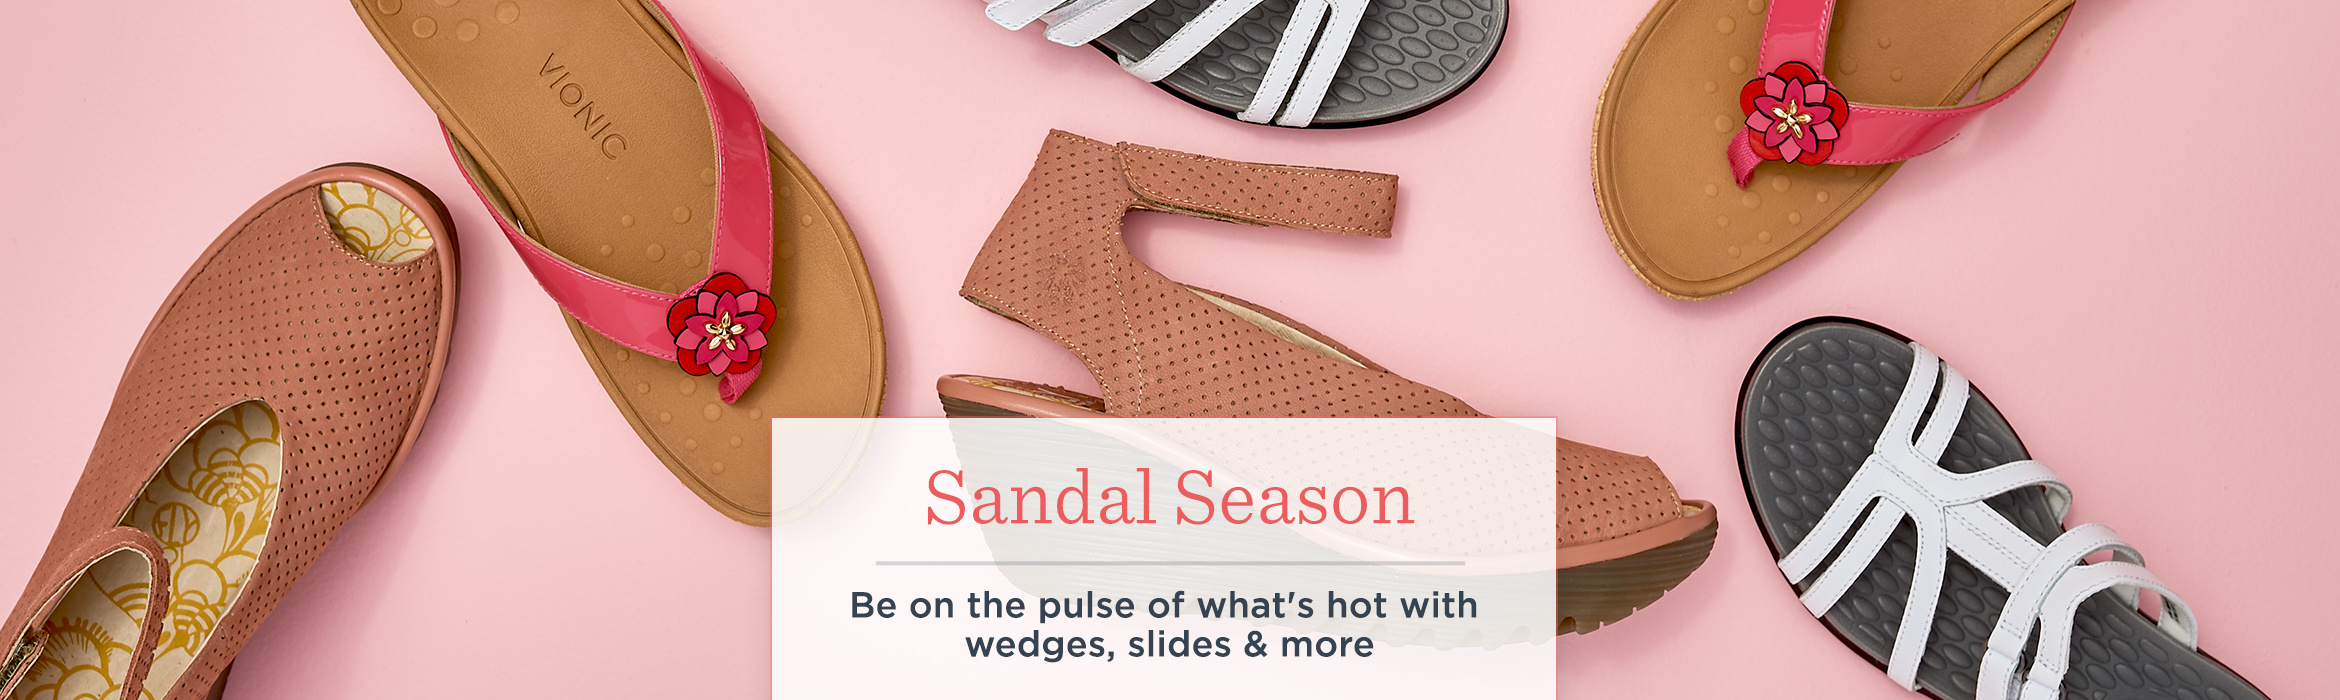 Sandal Season. Be on the pulse of what's hot with wedges, slides & more